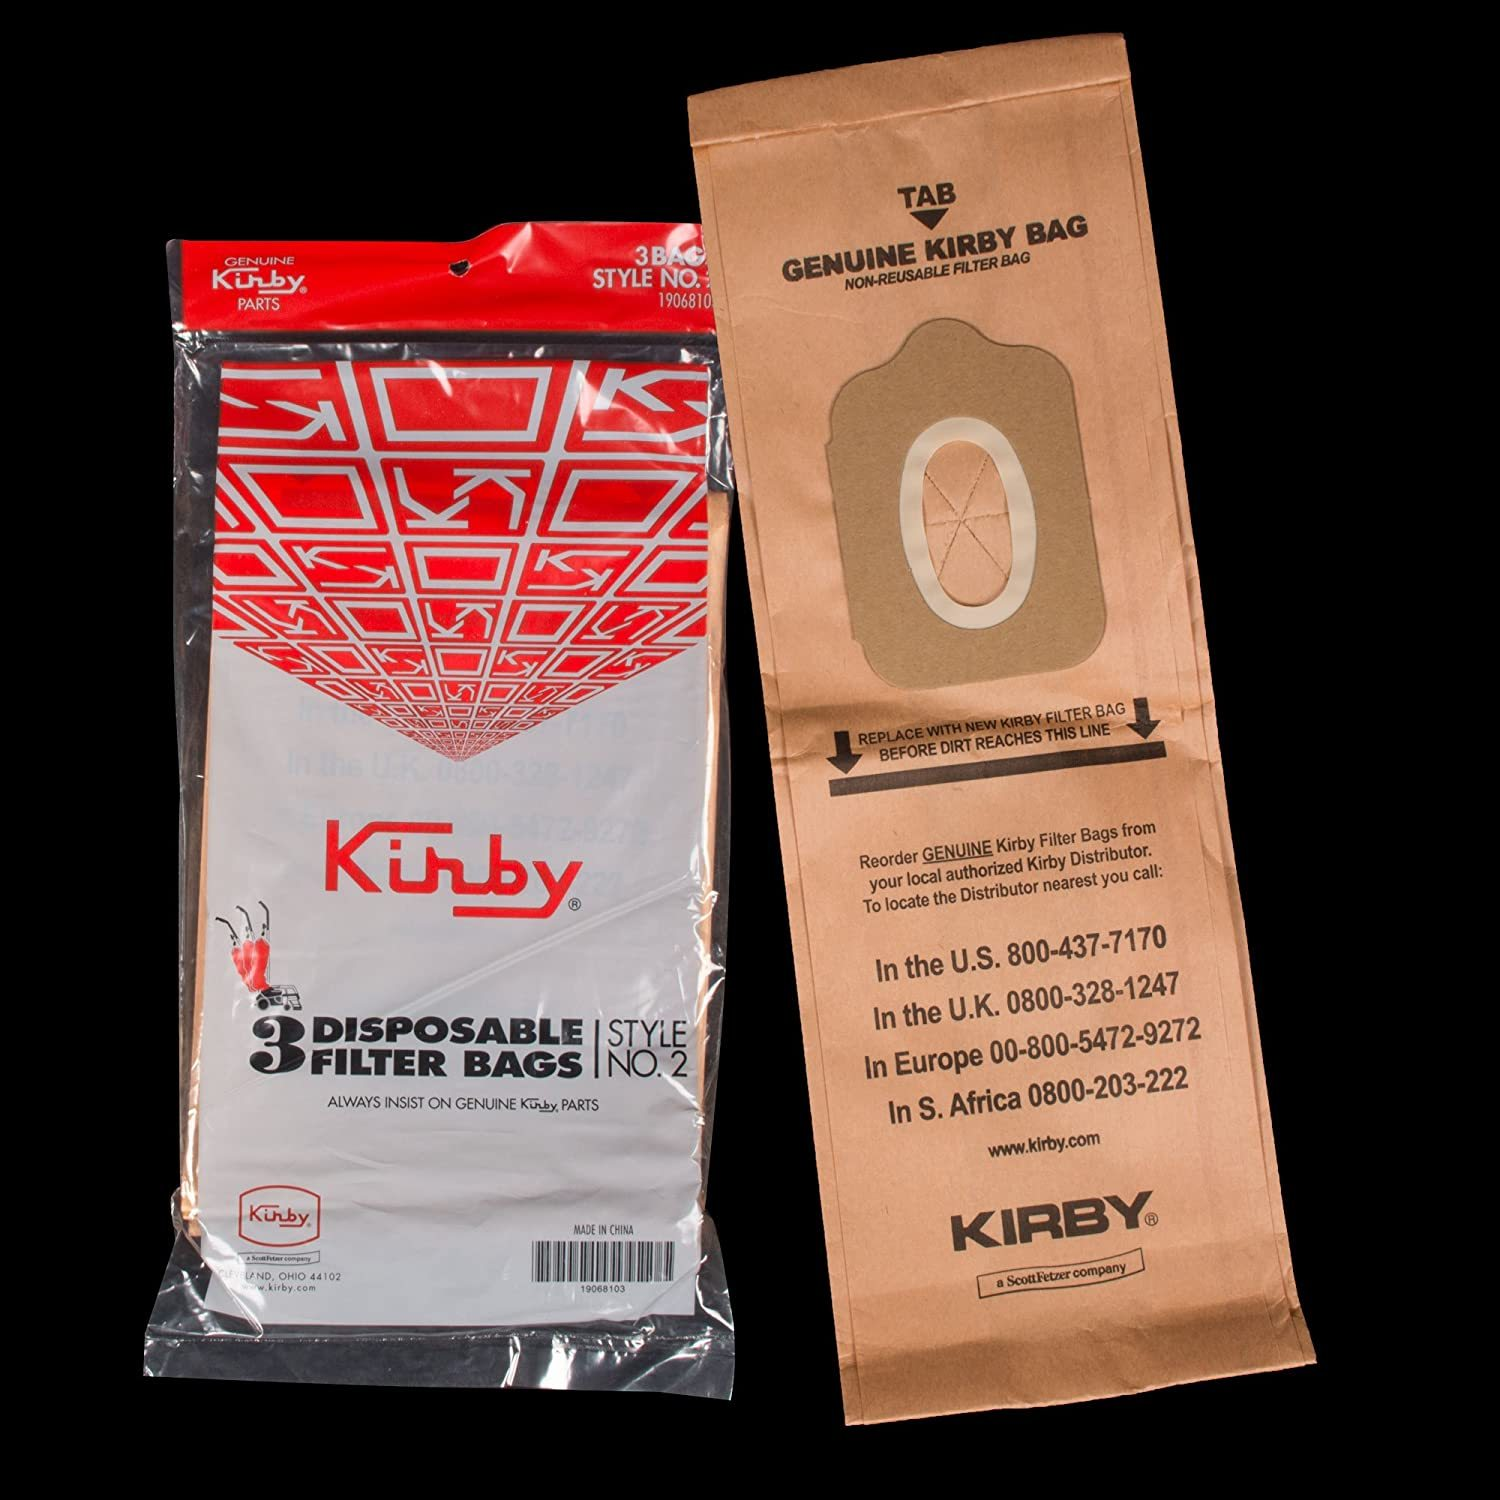 Primary image for Kirby Style 2 Upright Vacuum Cleaner Bags - 3 Pack